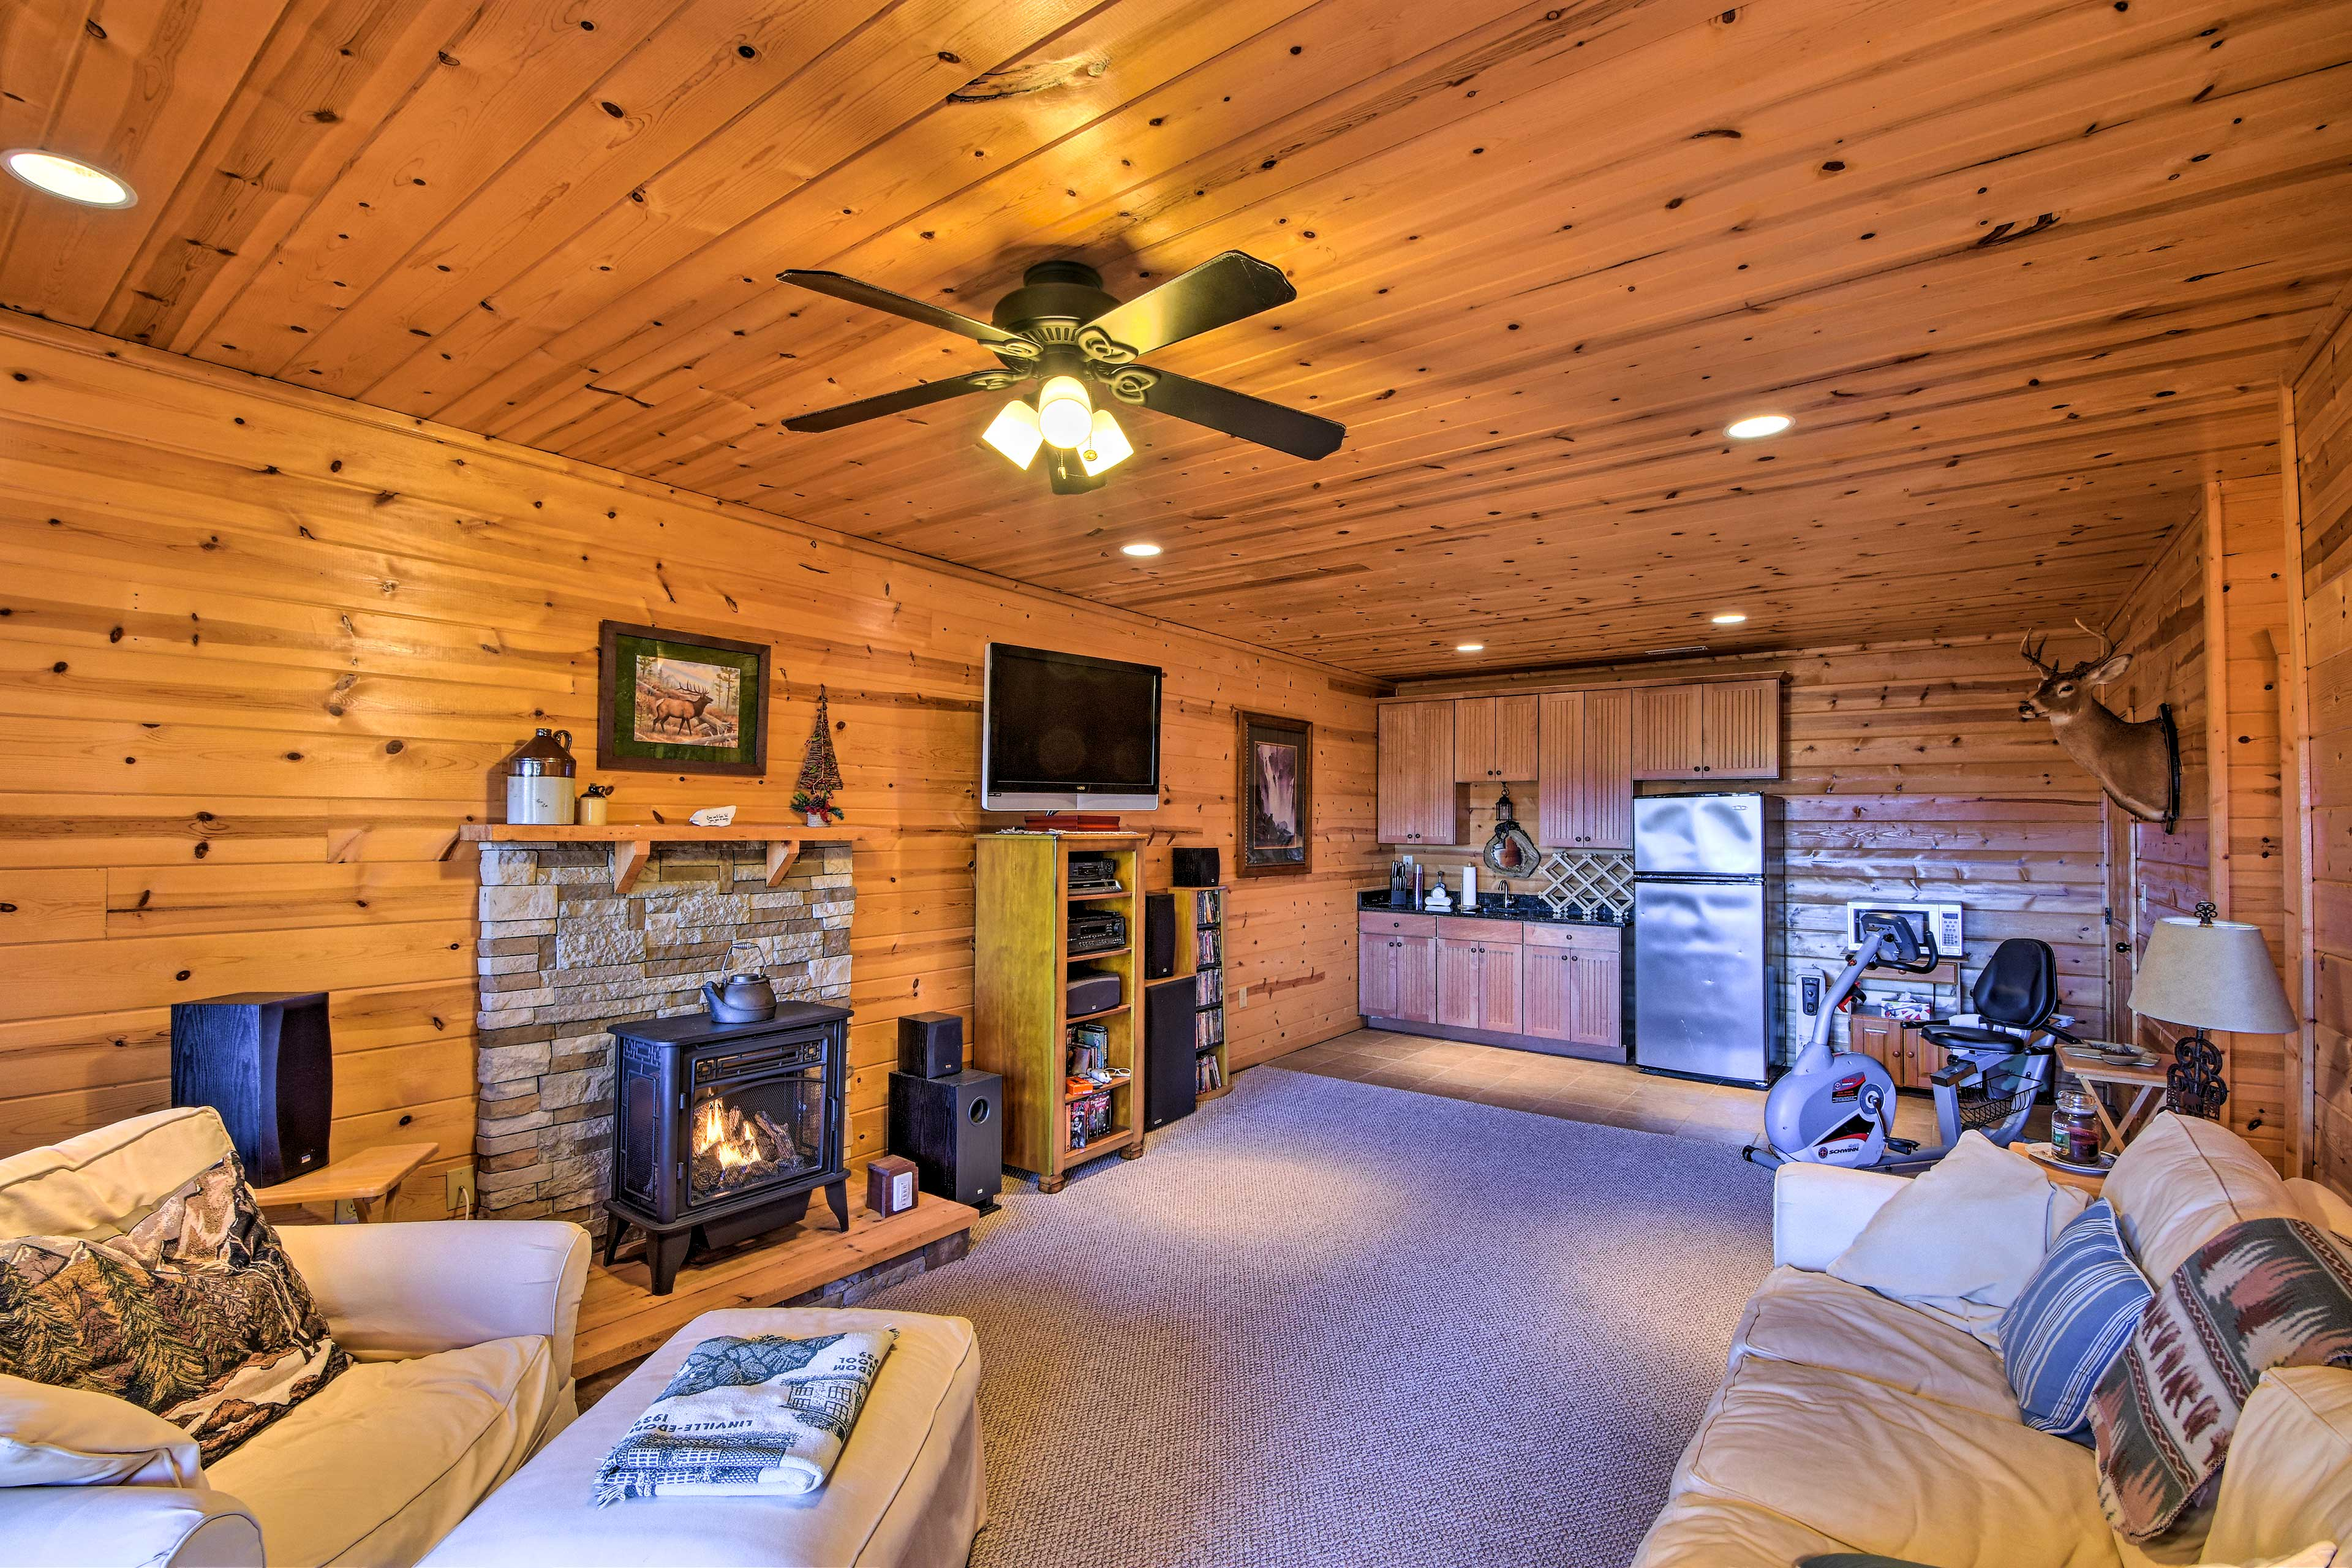 The lower-level features a wet bar, fireplace, and flat-screen TV.